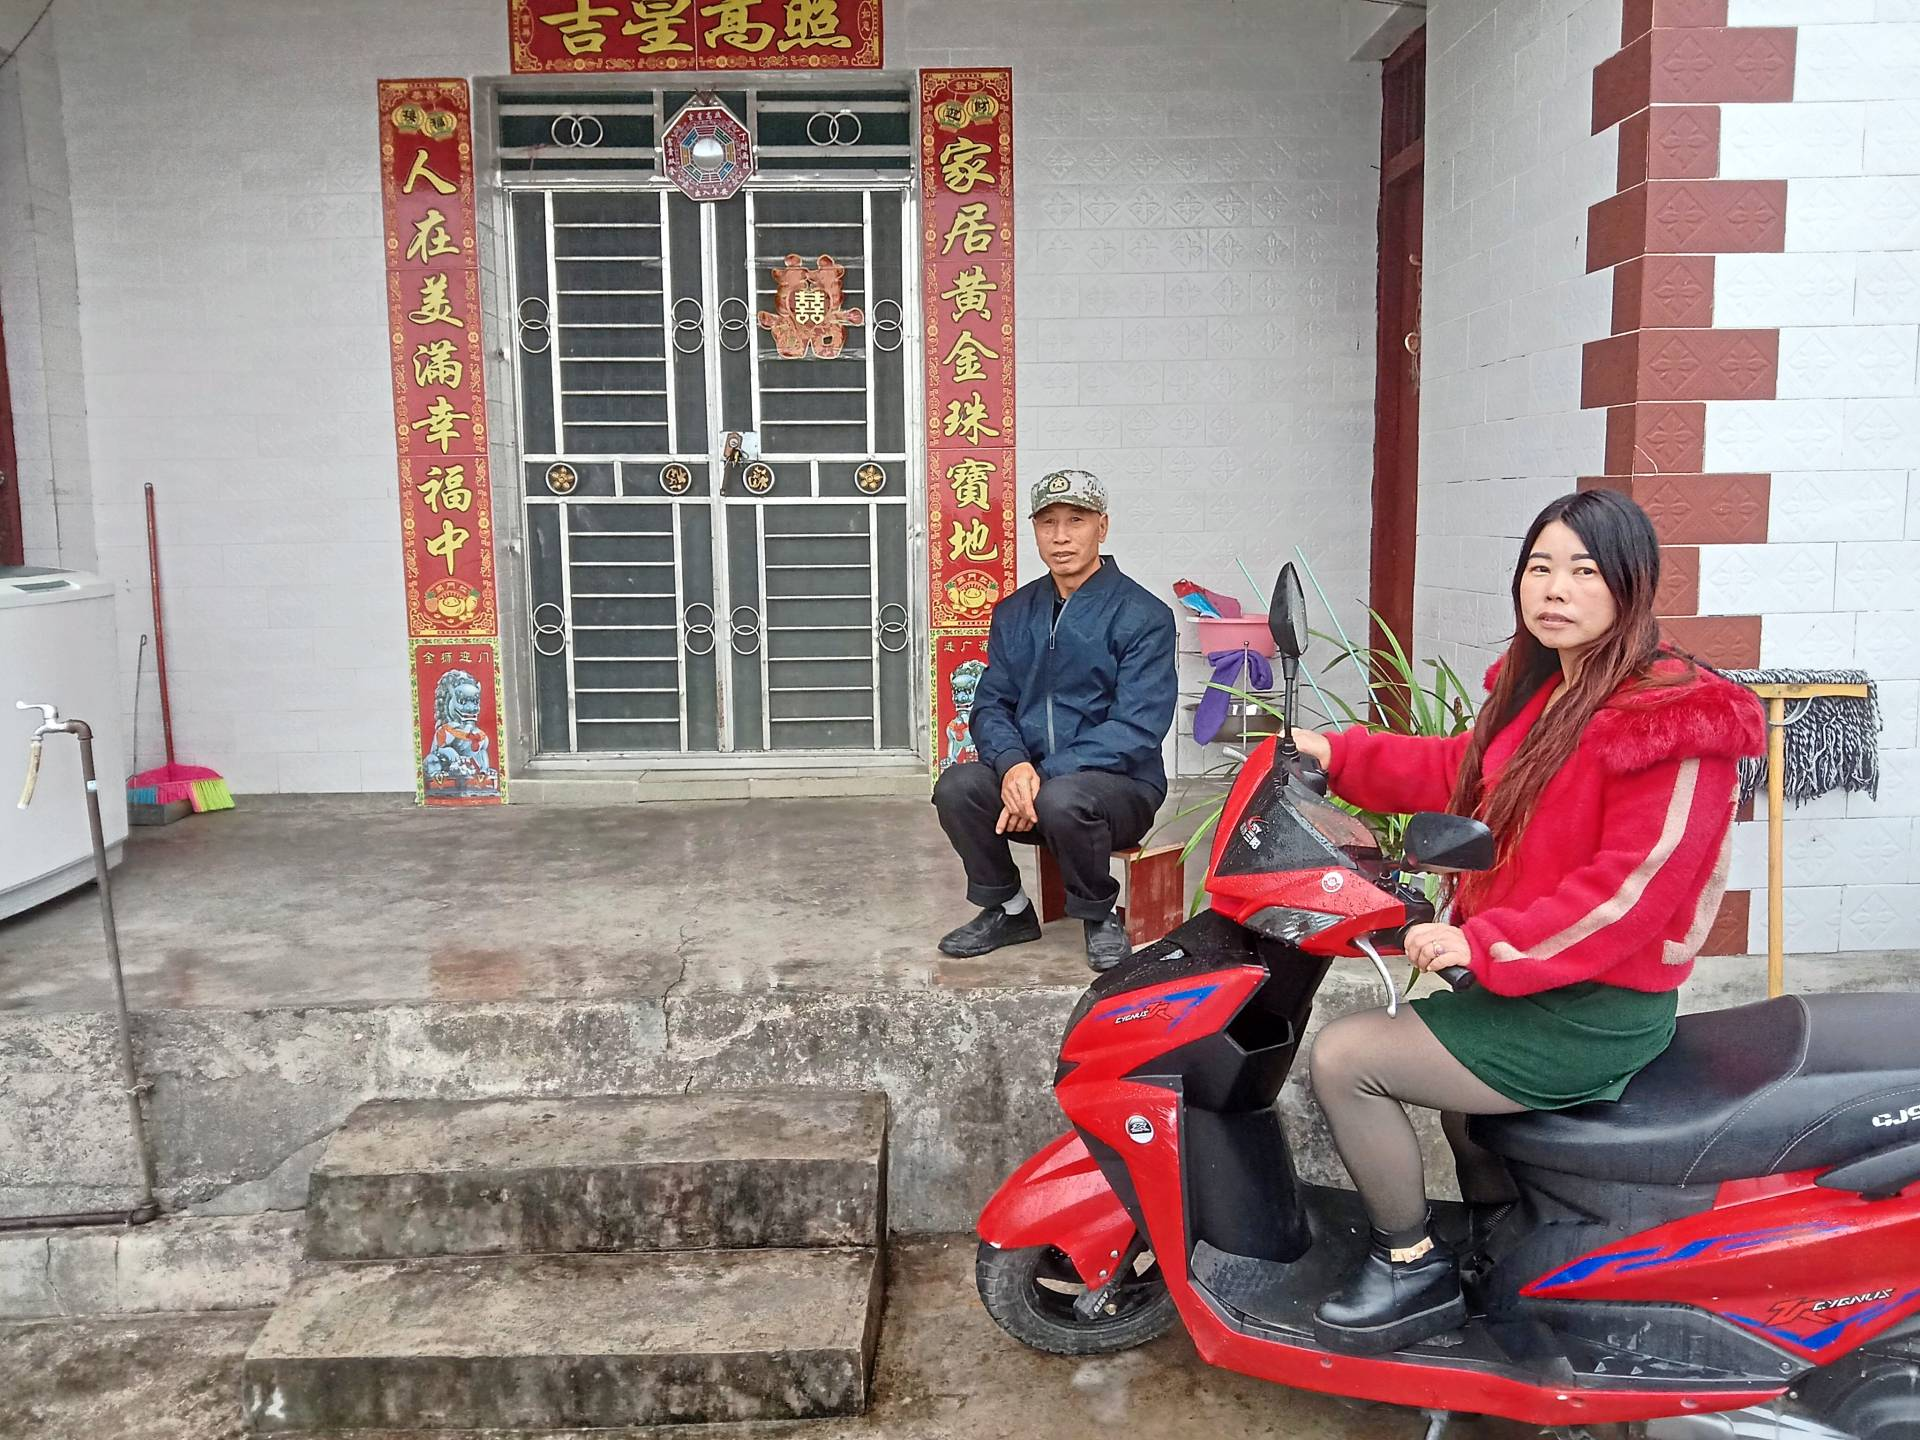 Chen Jia Jie (right) on her motorbike in front of her new house built with the help of government subsidy in the village of Wangou in Jinchang, Yunnan.